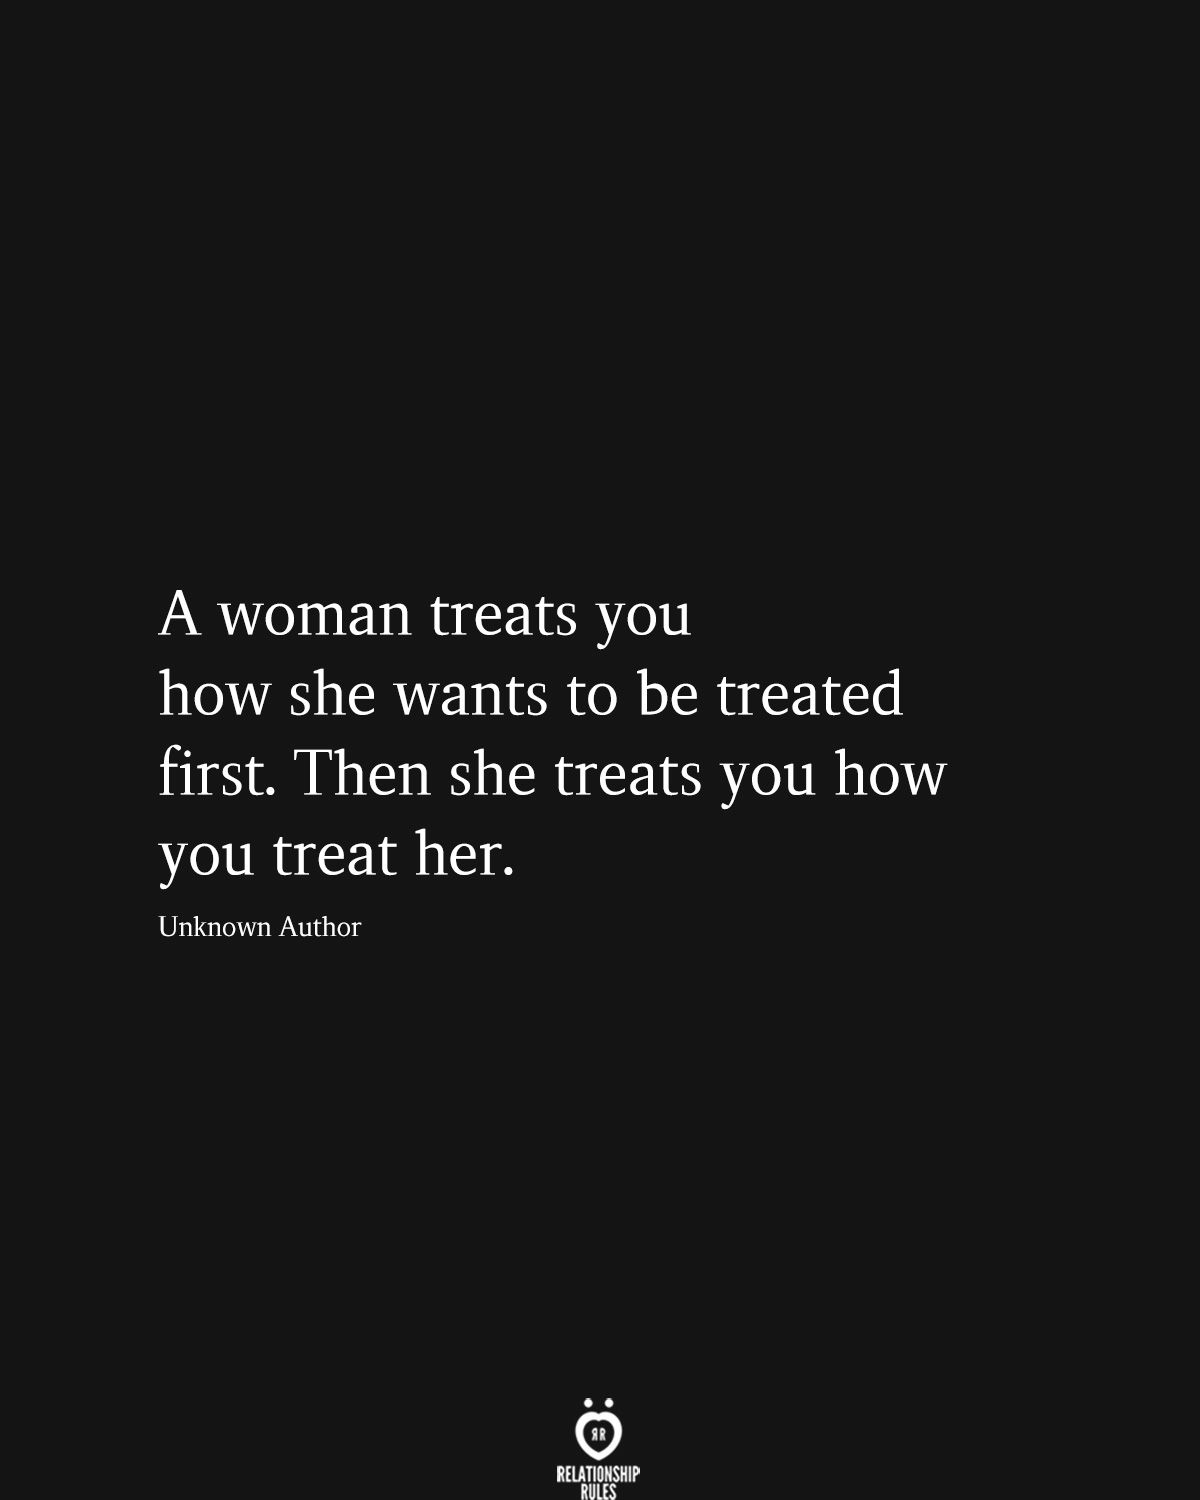 A Woman Treats You How She Wants To Be Treated First